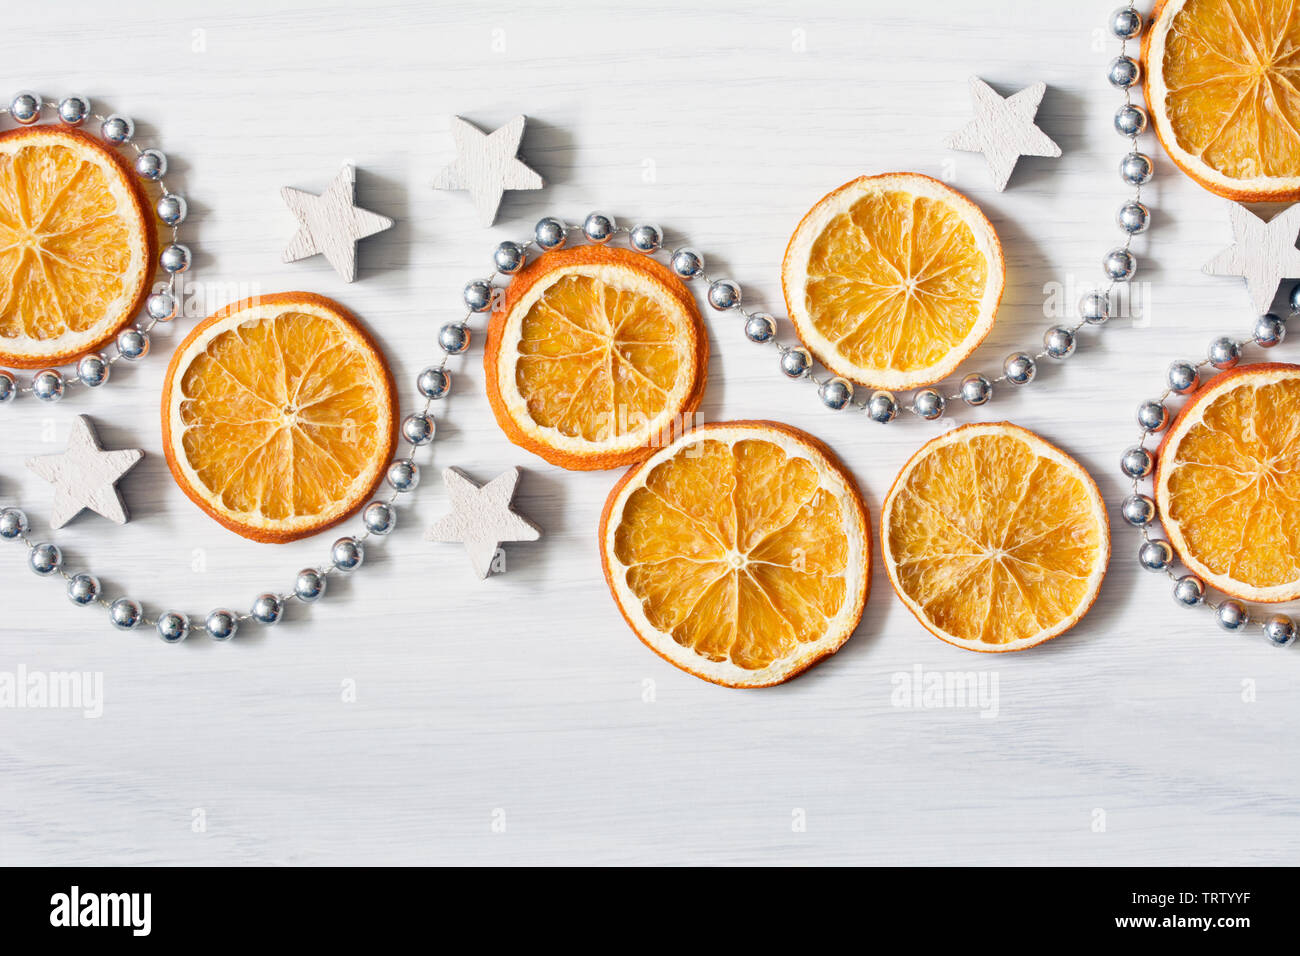 Christmas composition with dried oranges, white stars and silver bead chain - white background with deep shadows - close-up - Stock Image